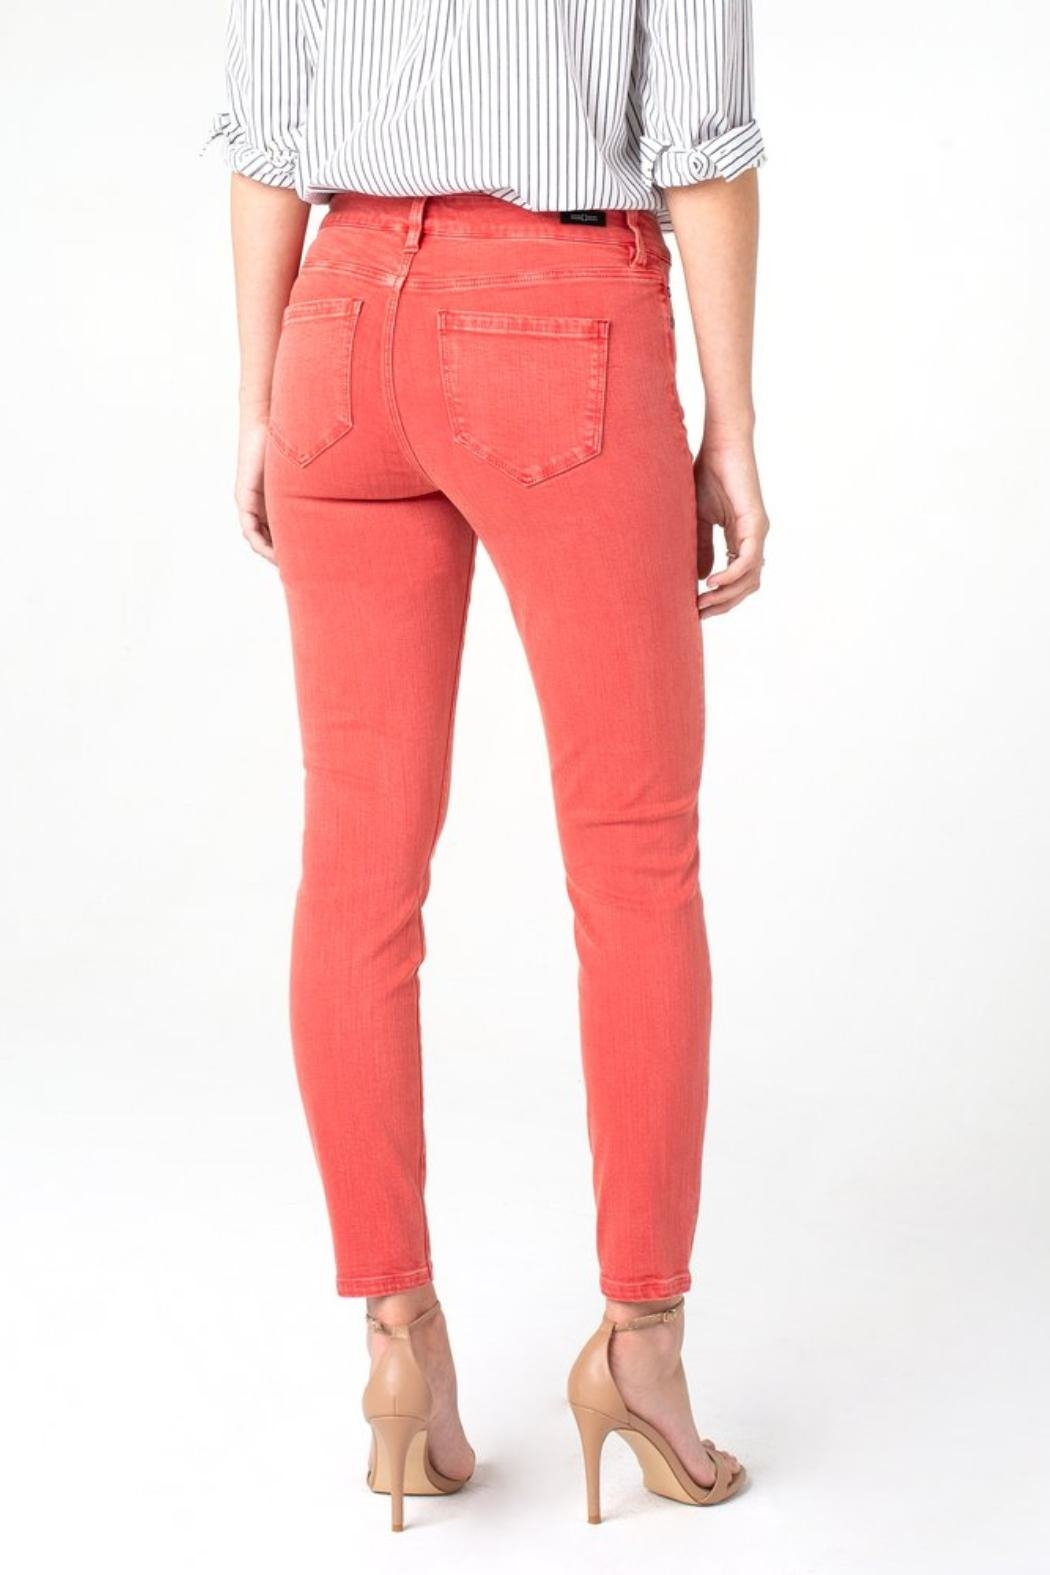 Liverpool Jean Company Penny Ankle Jeans - Side Cropped Image